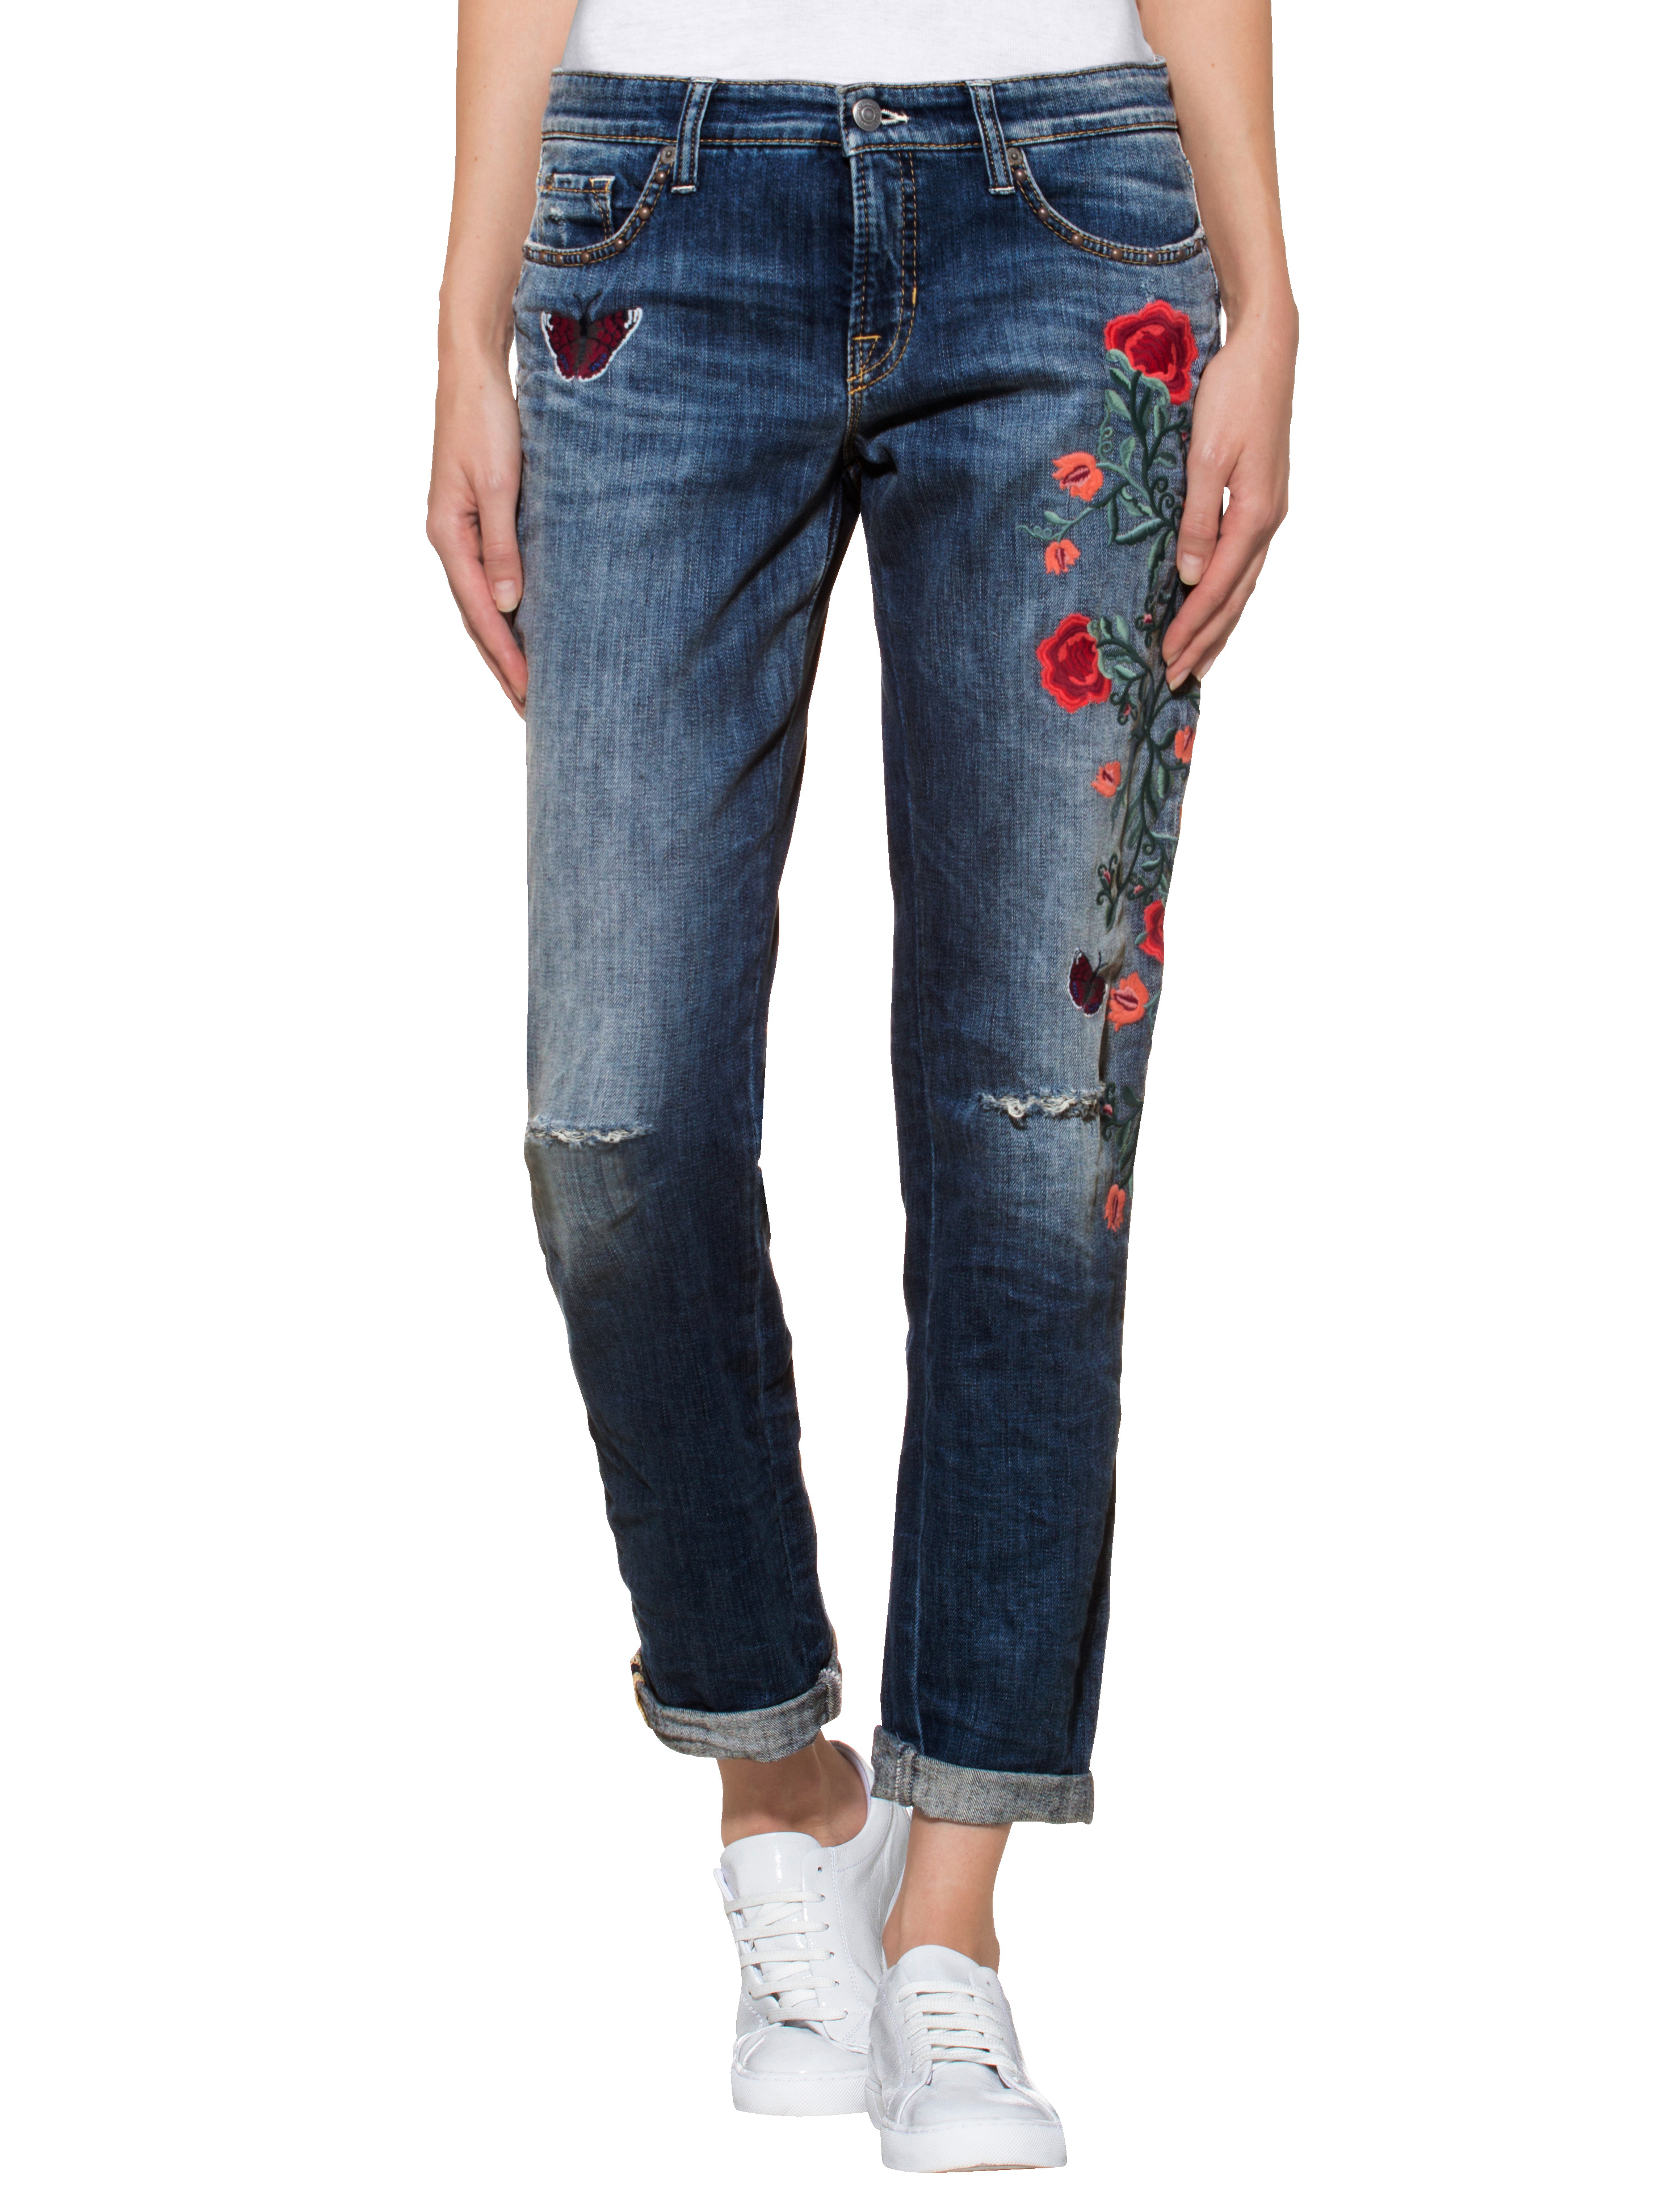 How to buy the cambio jeans?